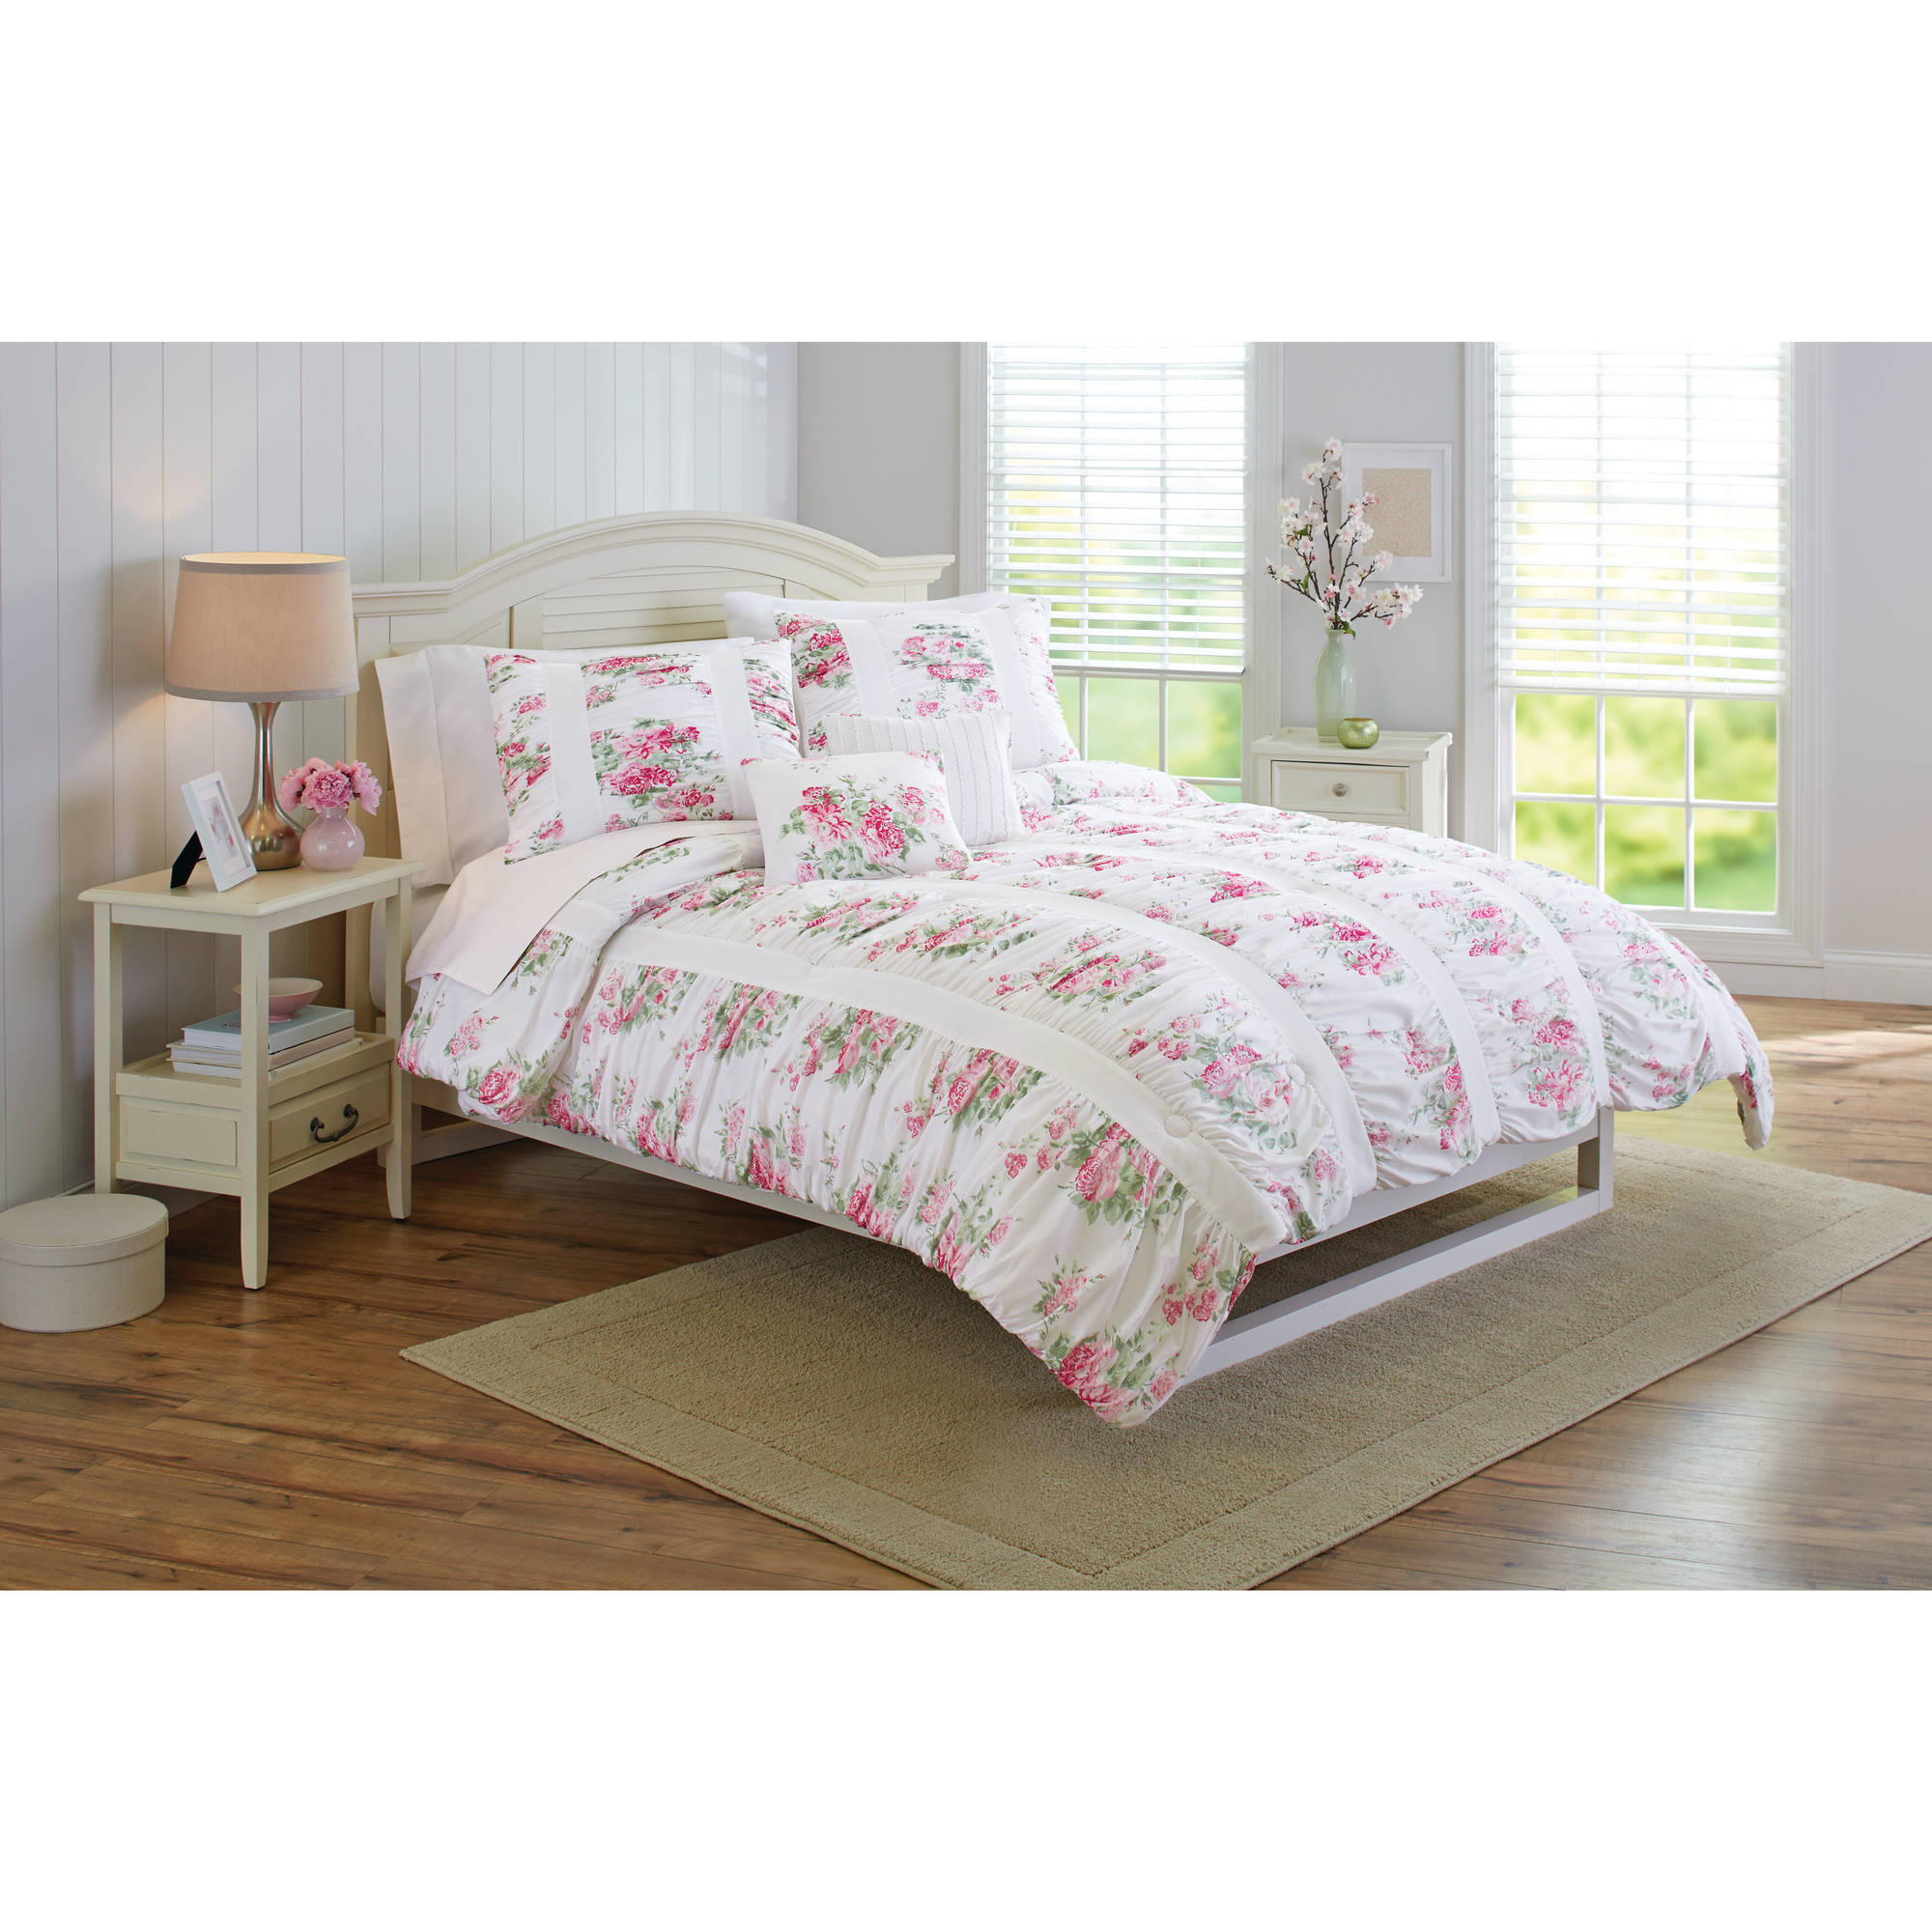 Better Homes And Gardens Bedding Home Design